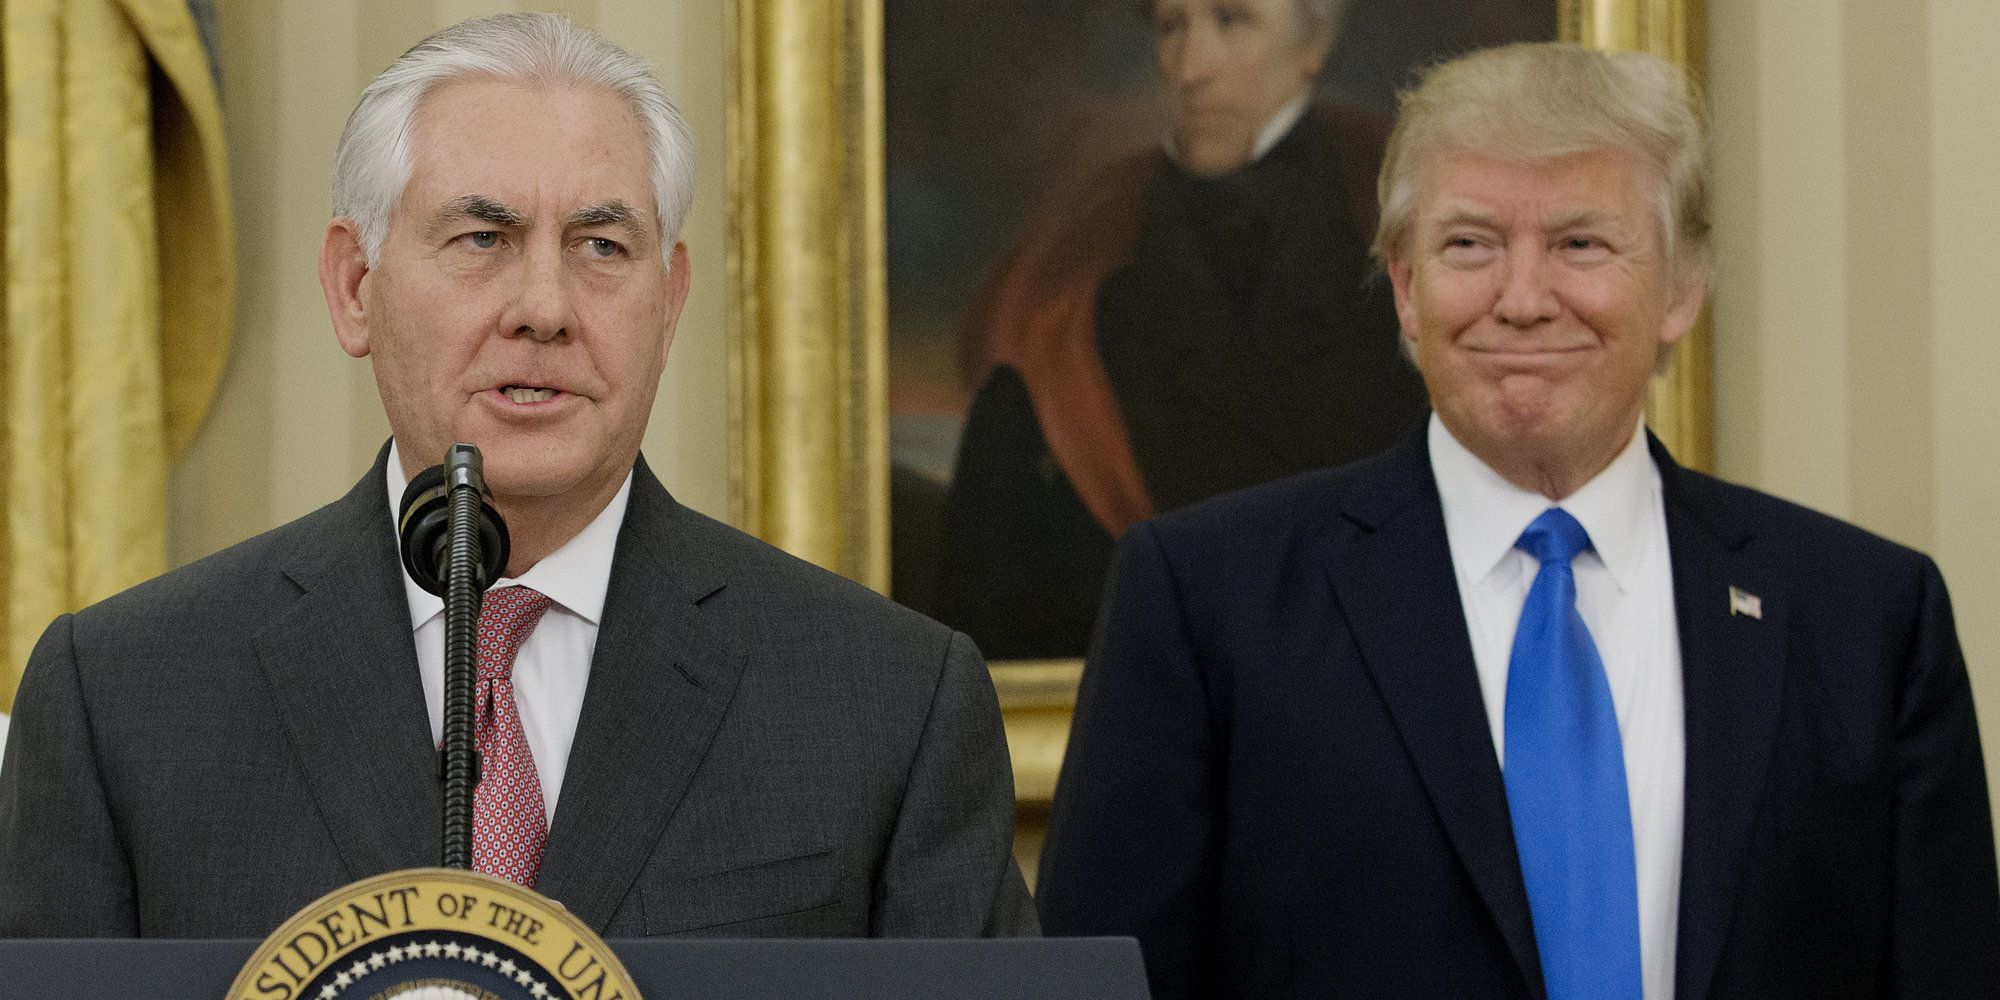 Rex Tillerson On Being Secretary Of State: 'I Didn't Want This Job' | The Huffington Post